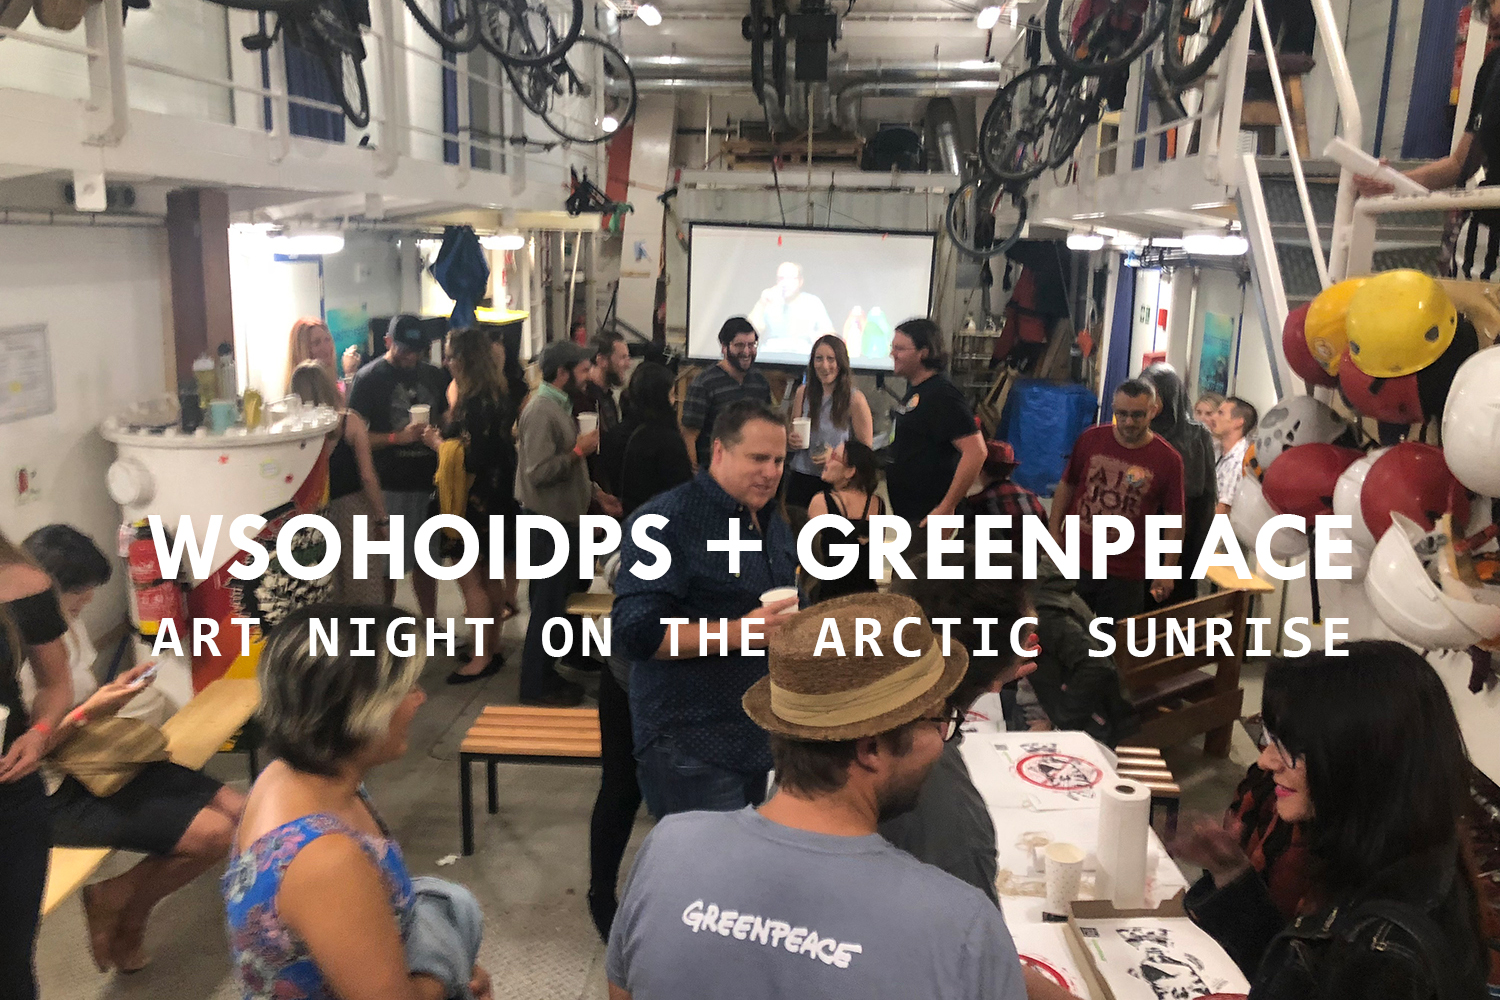 ART NIGHT ON THE ARCTIC SUNRISE